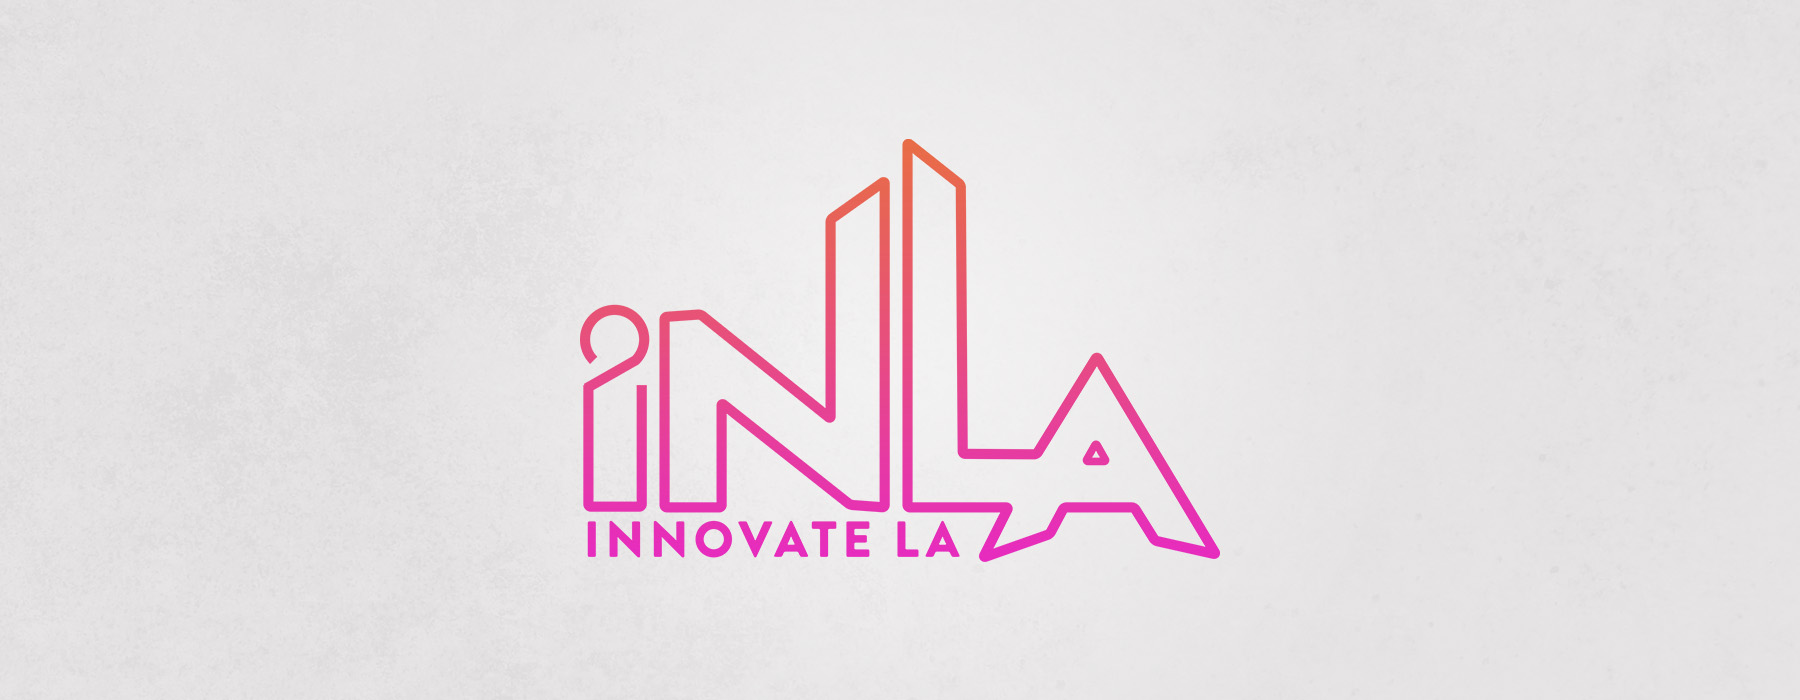 InnovateLA 2017 Recap: Changing the Dialogue About Los Angeles